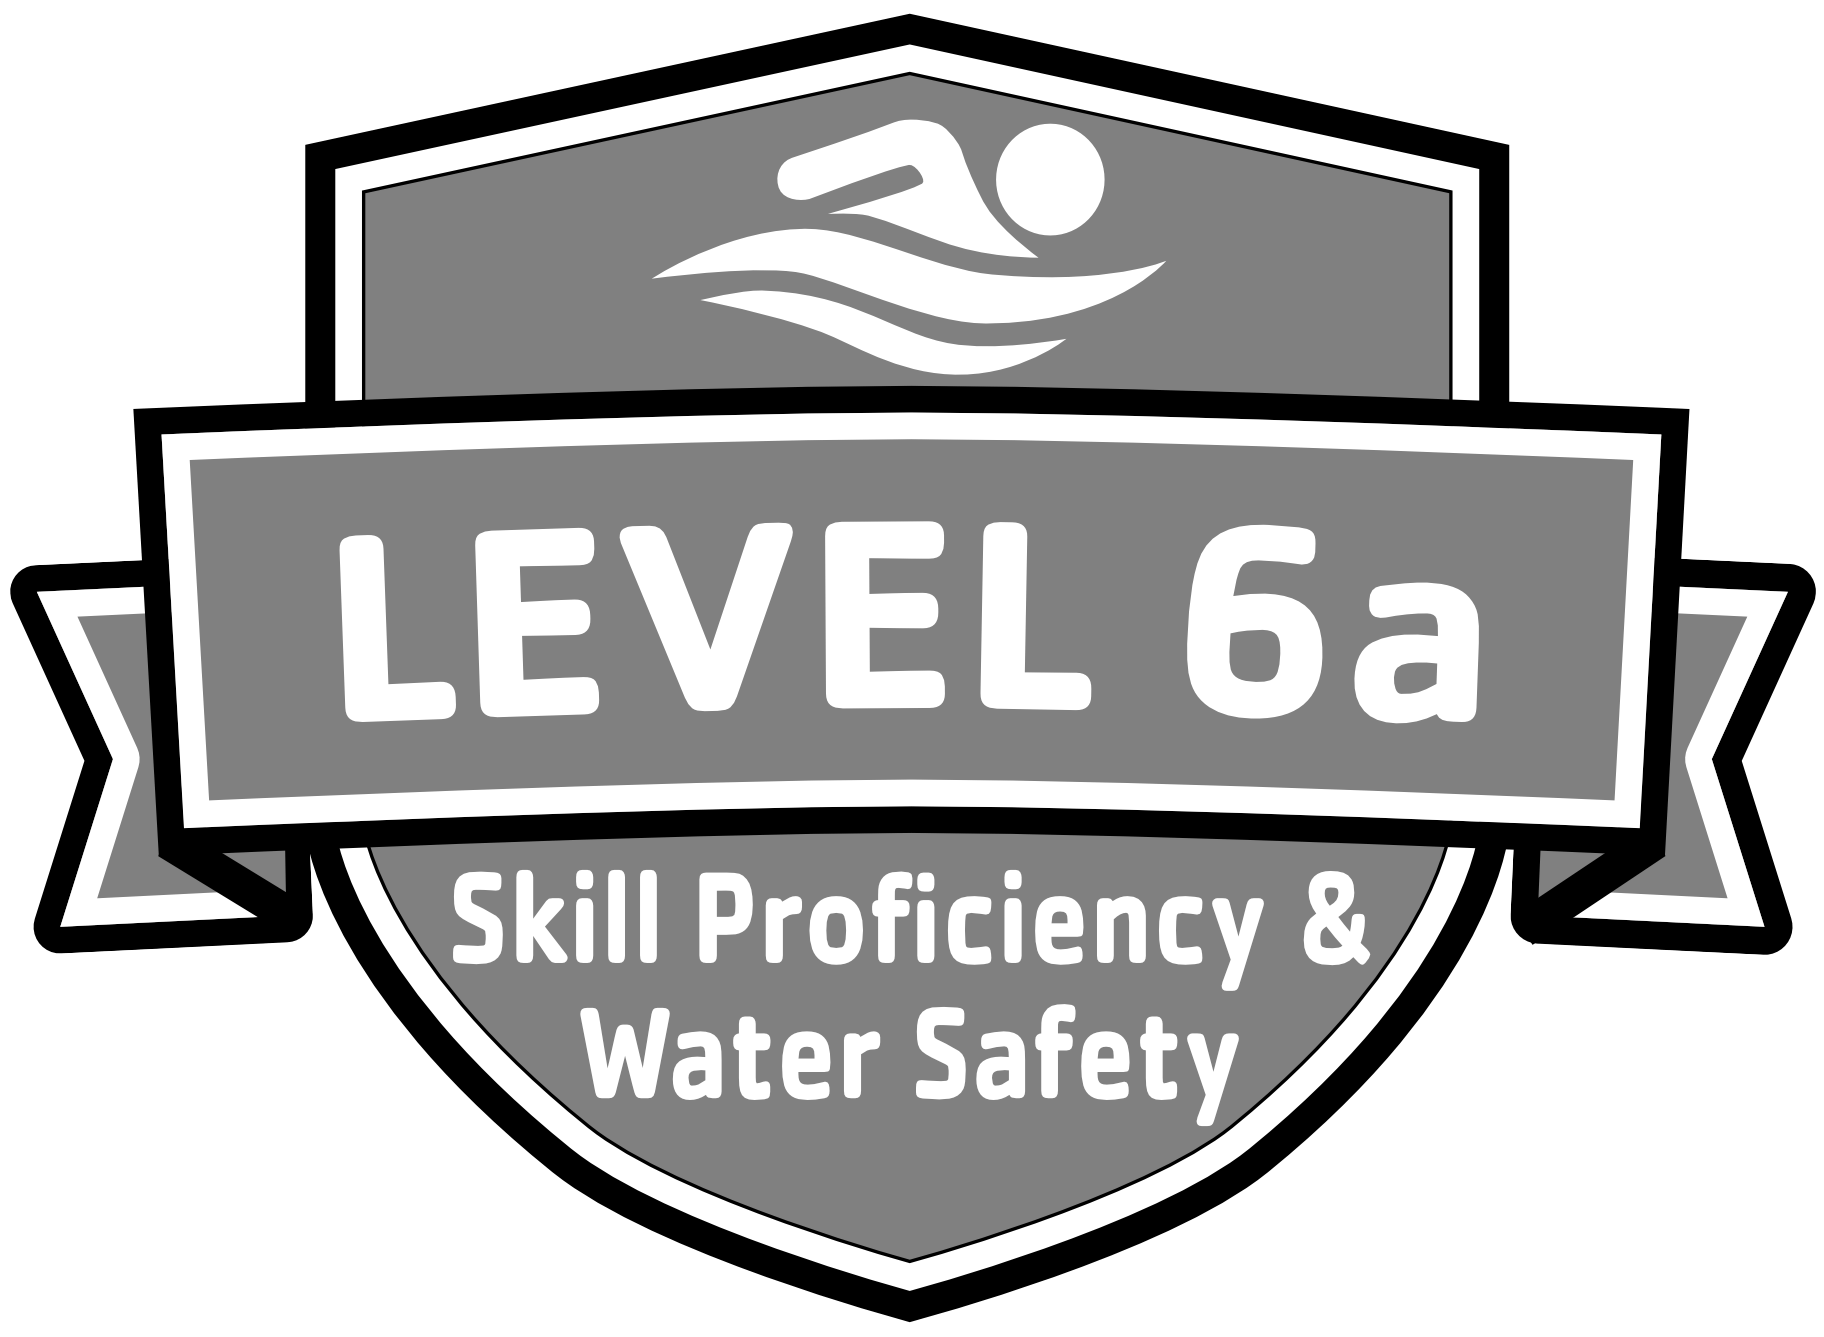 Swim Lesson Level 6a